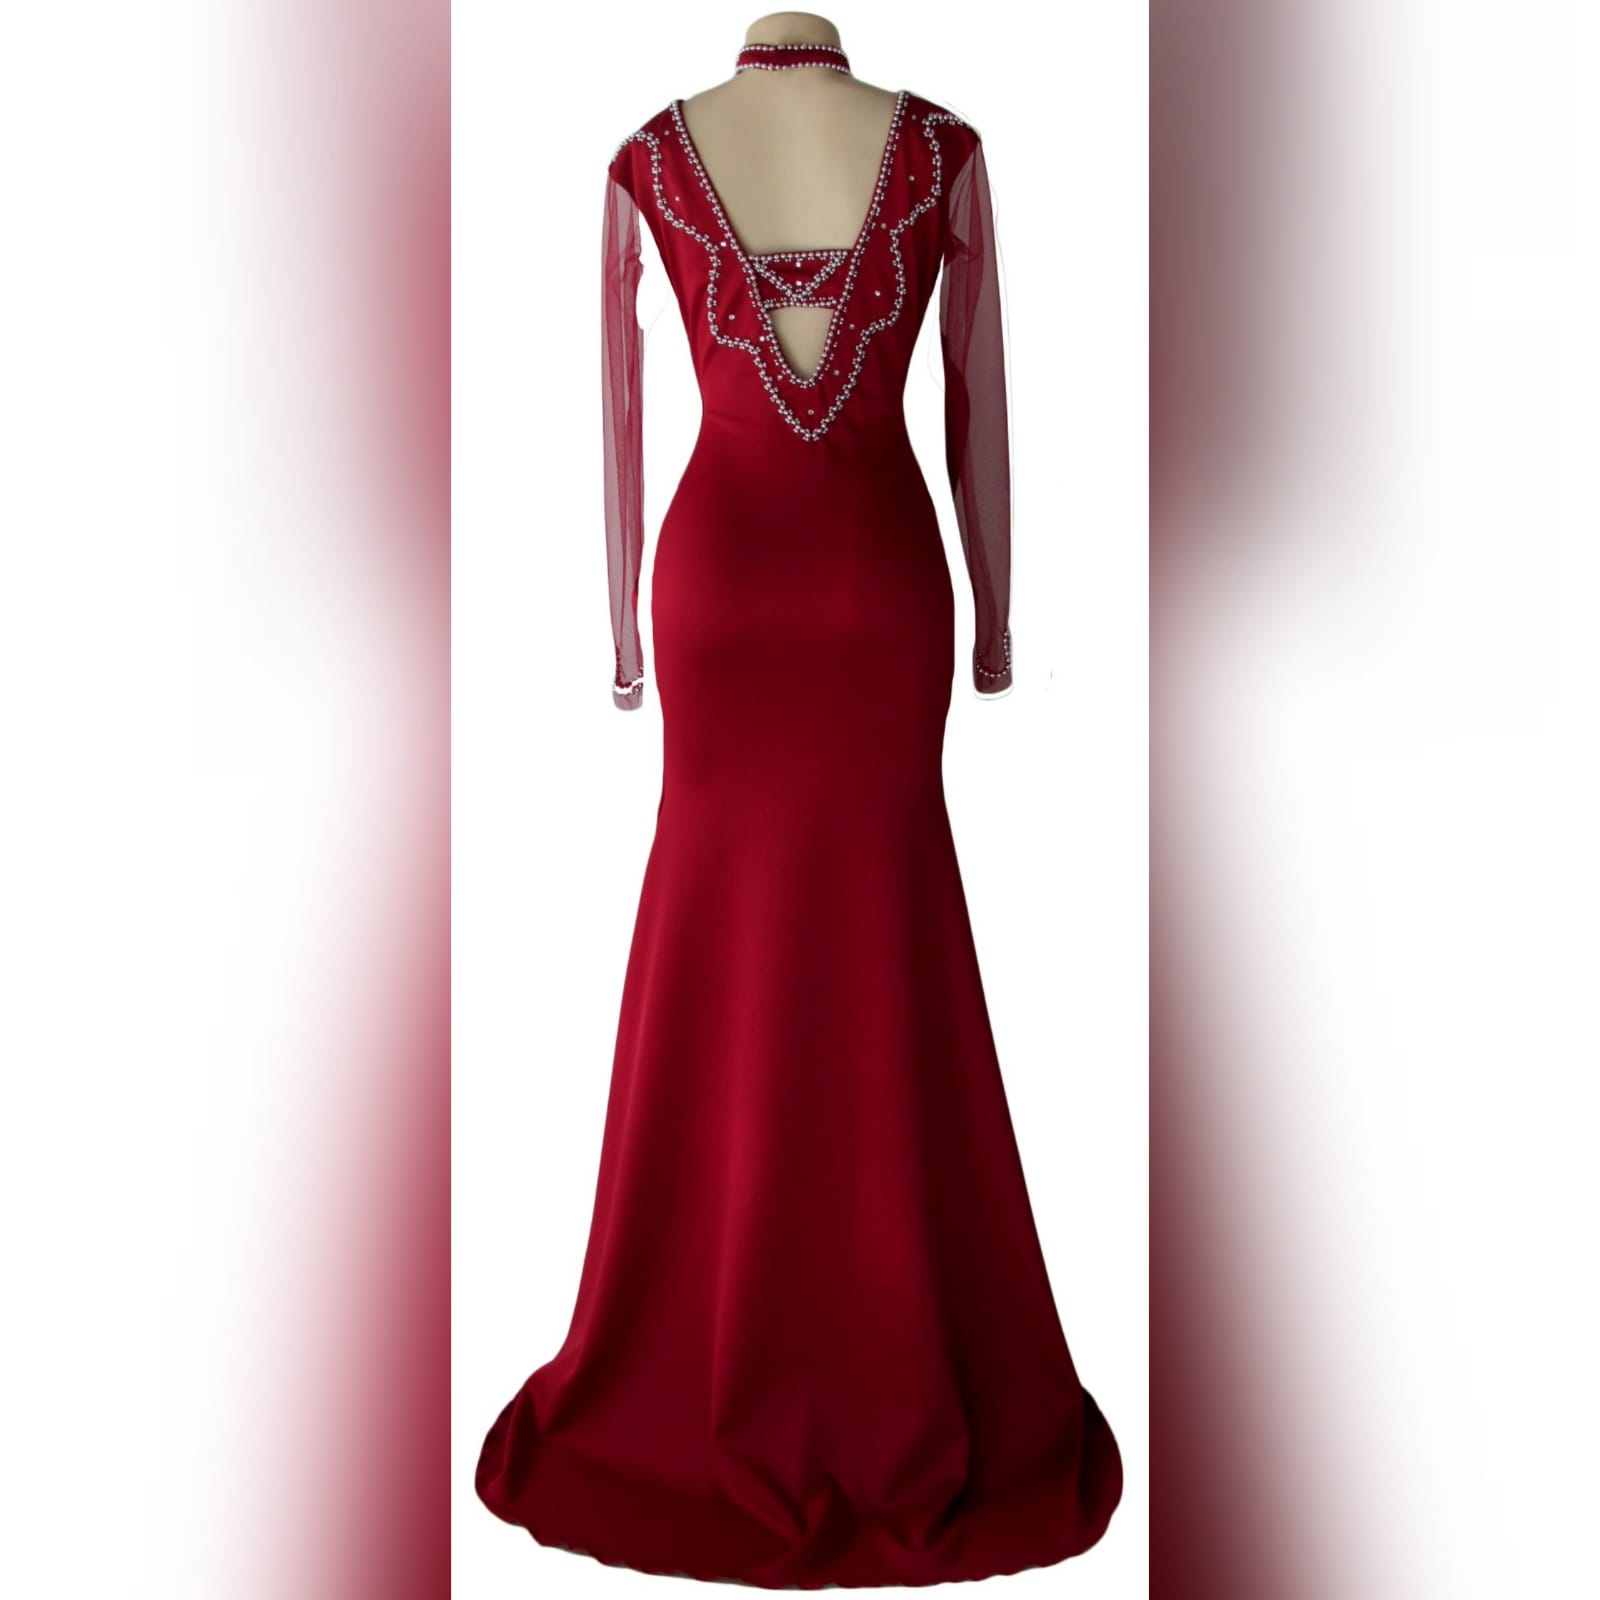 Beaded red long evening party dress 3 red long evening party dress, fitted till hip then it flares out a bit, with a train, with long sheer sleeves. Dress with a v neckline detailed in silver with an optional choker.